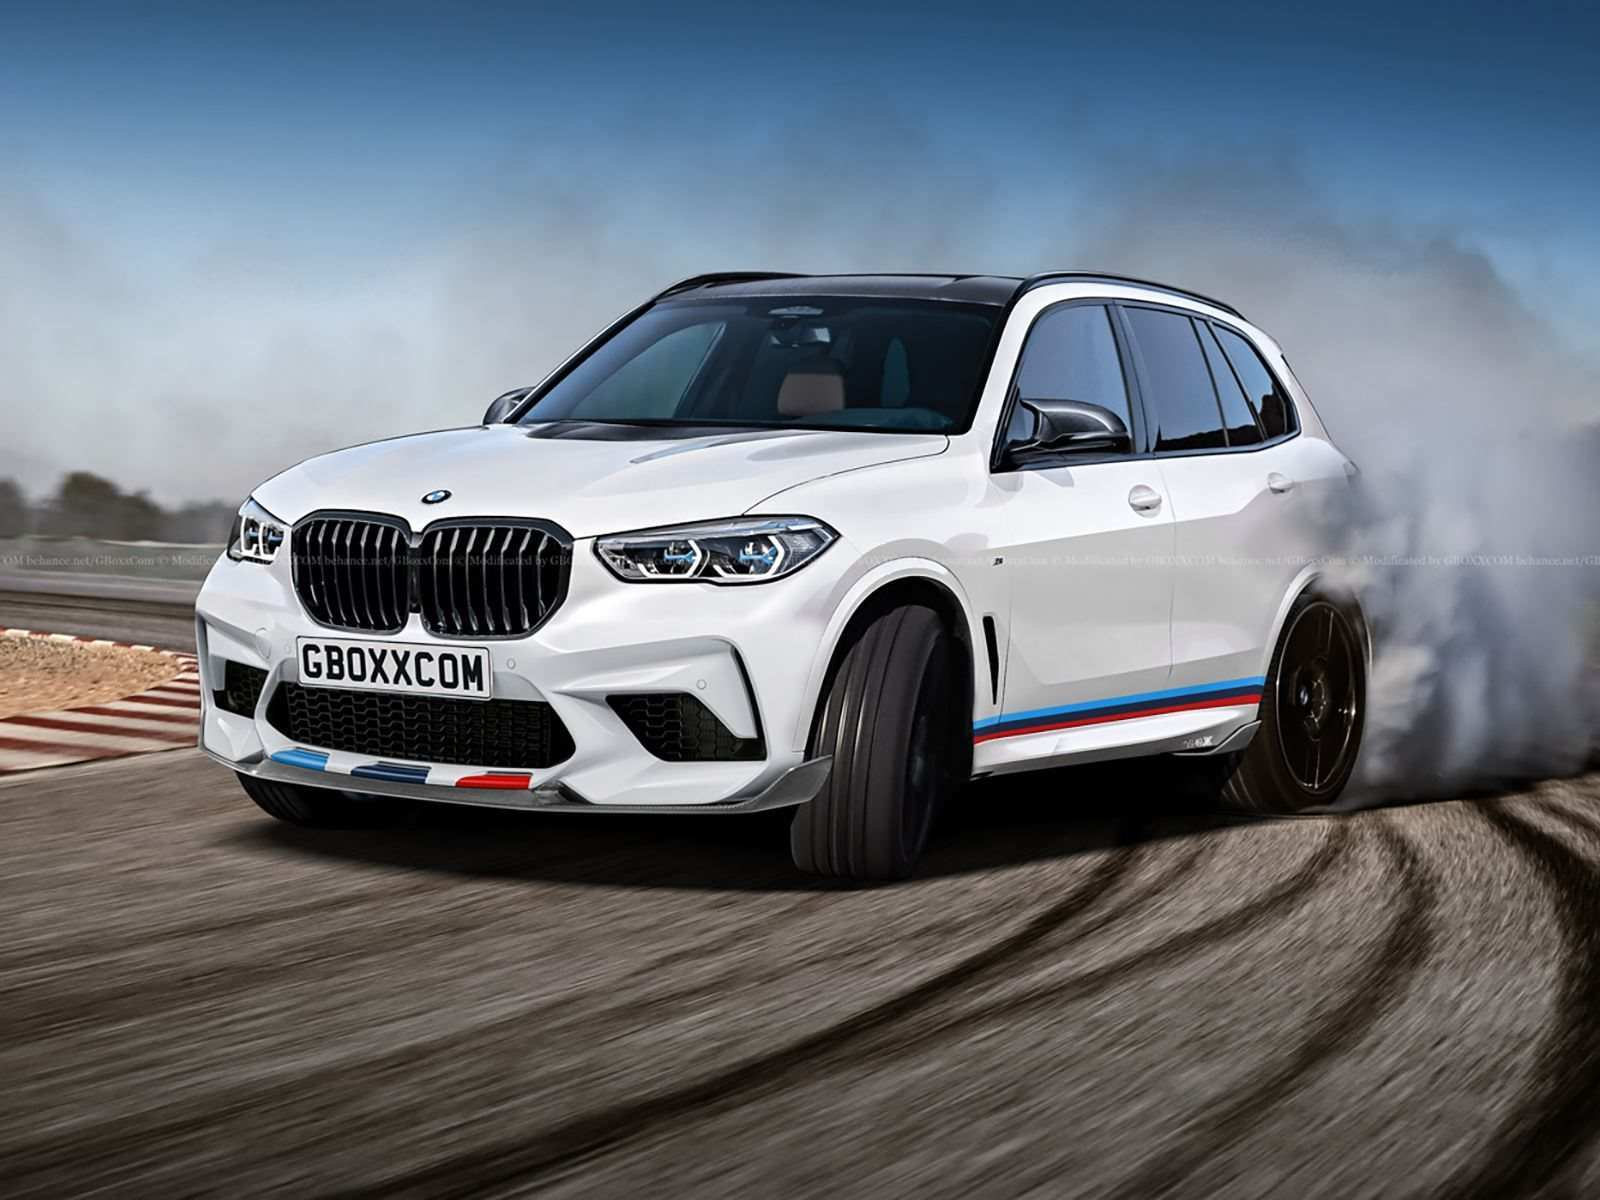 92 The Best 2020 Bmw Suv Engine